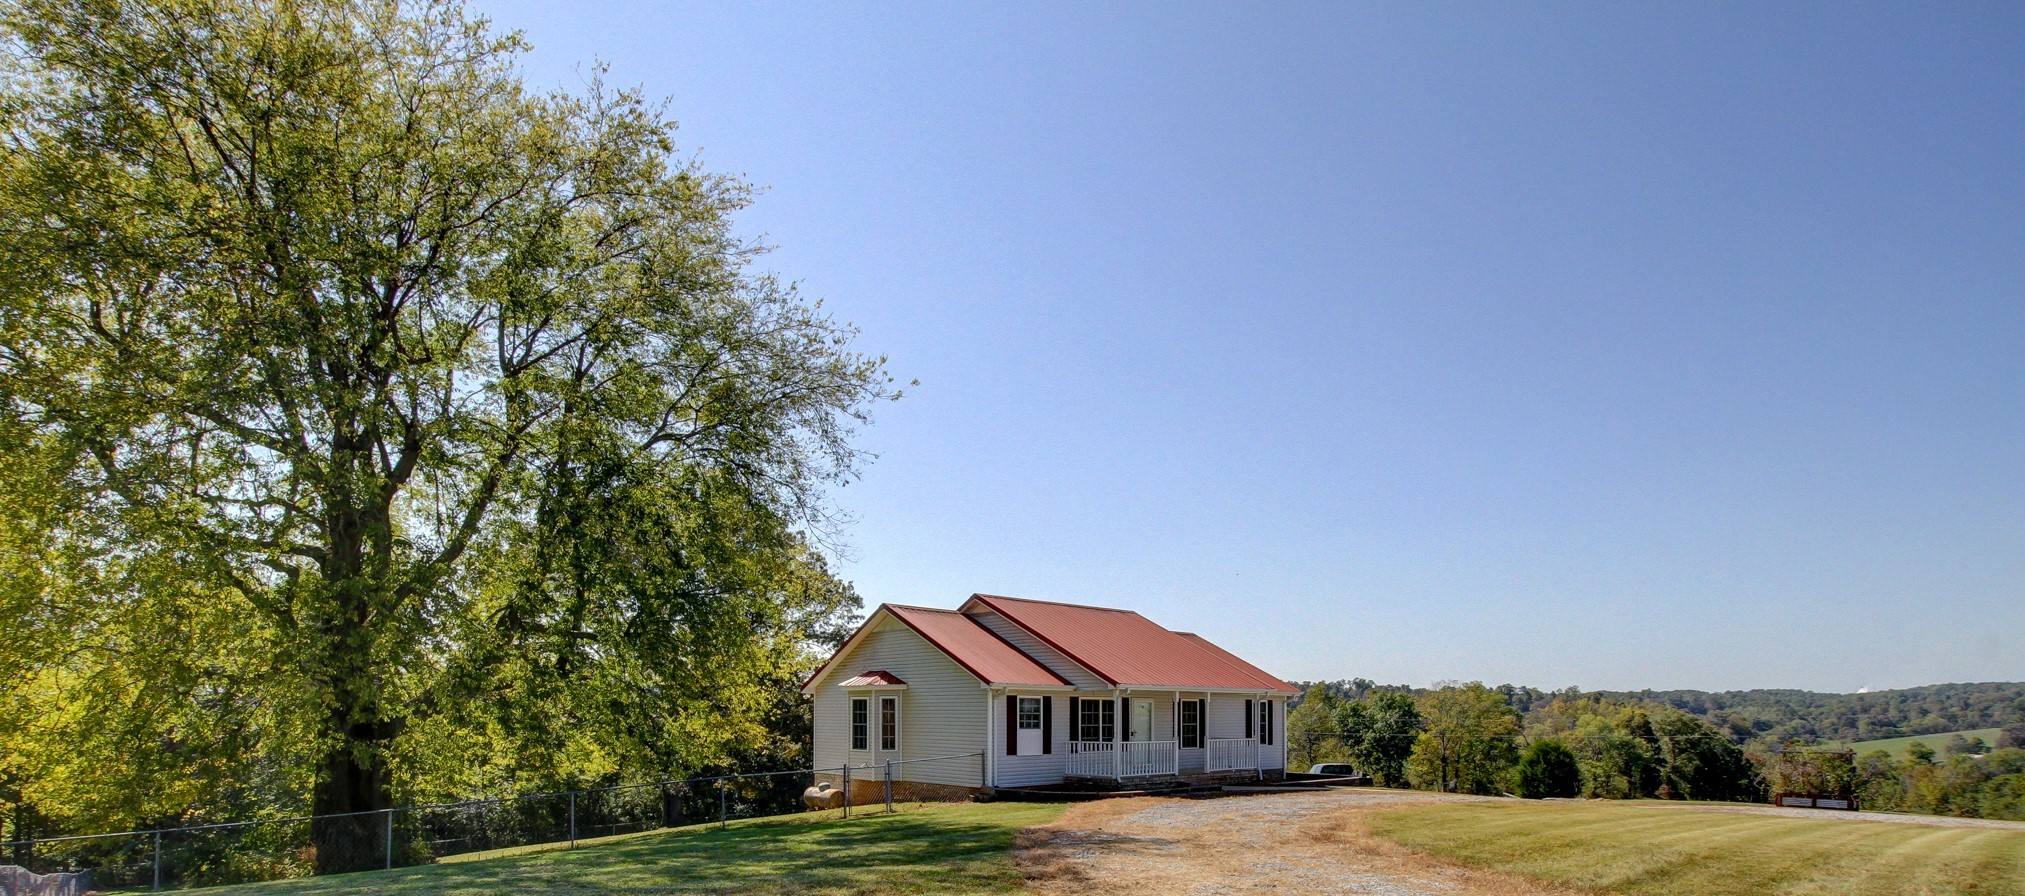 3680 McFall Rd Property Photo - Palmyra, TN real estate listing